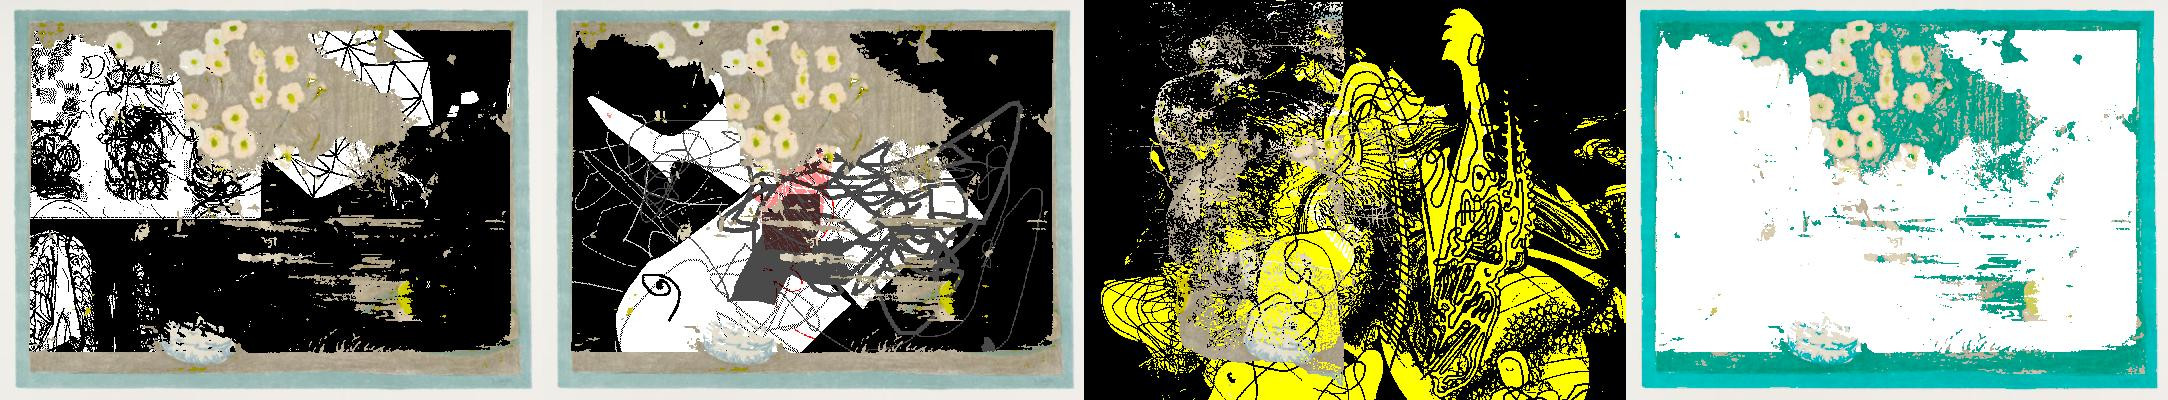 objects,_flying,_boat,_punt,_arts--10509-1604-2707-105895.jpg